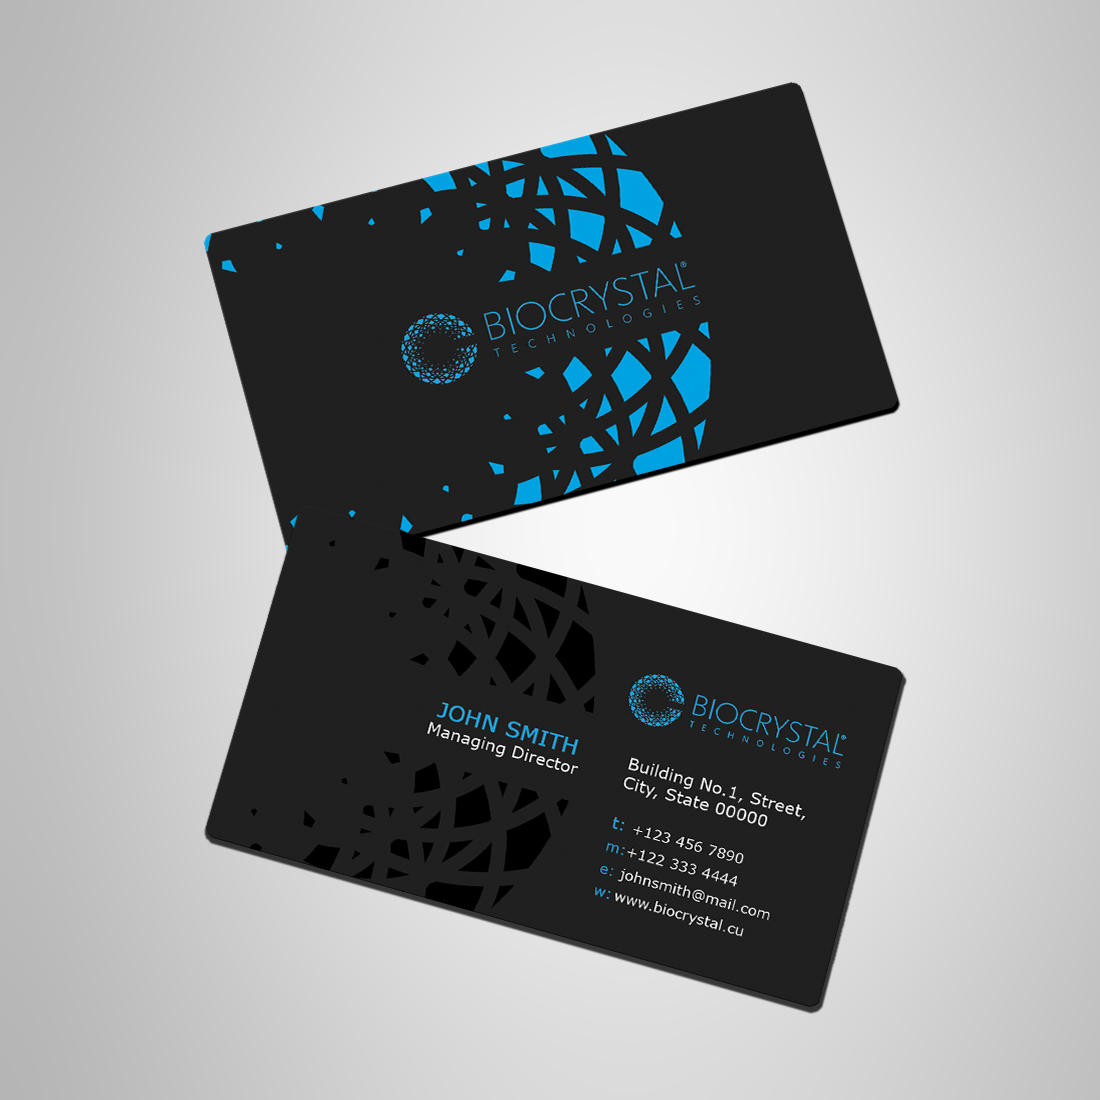 Business Card Design by Sajin for Biocrystal technologies  | Design #5593844